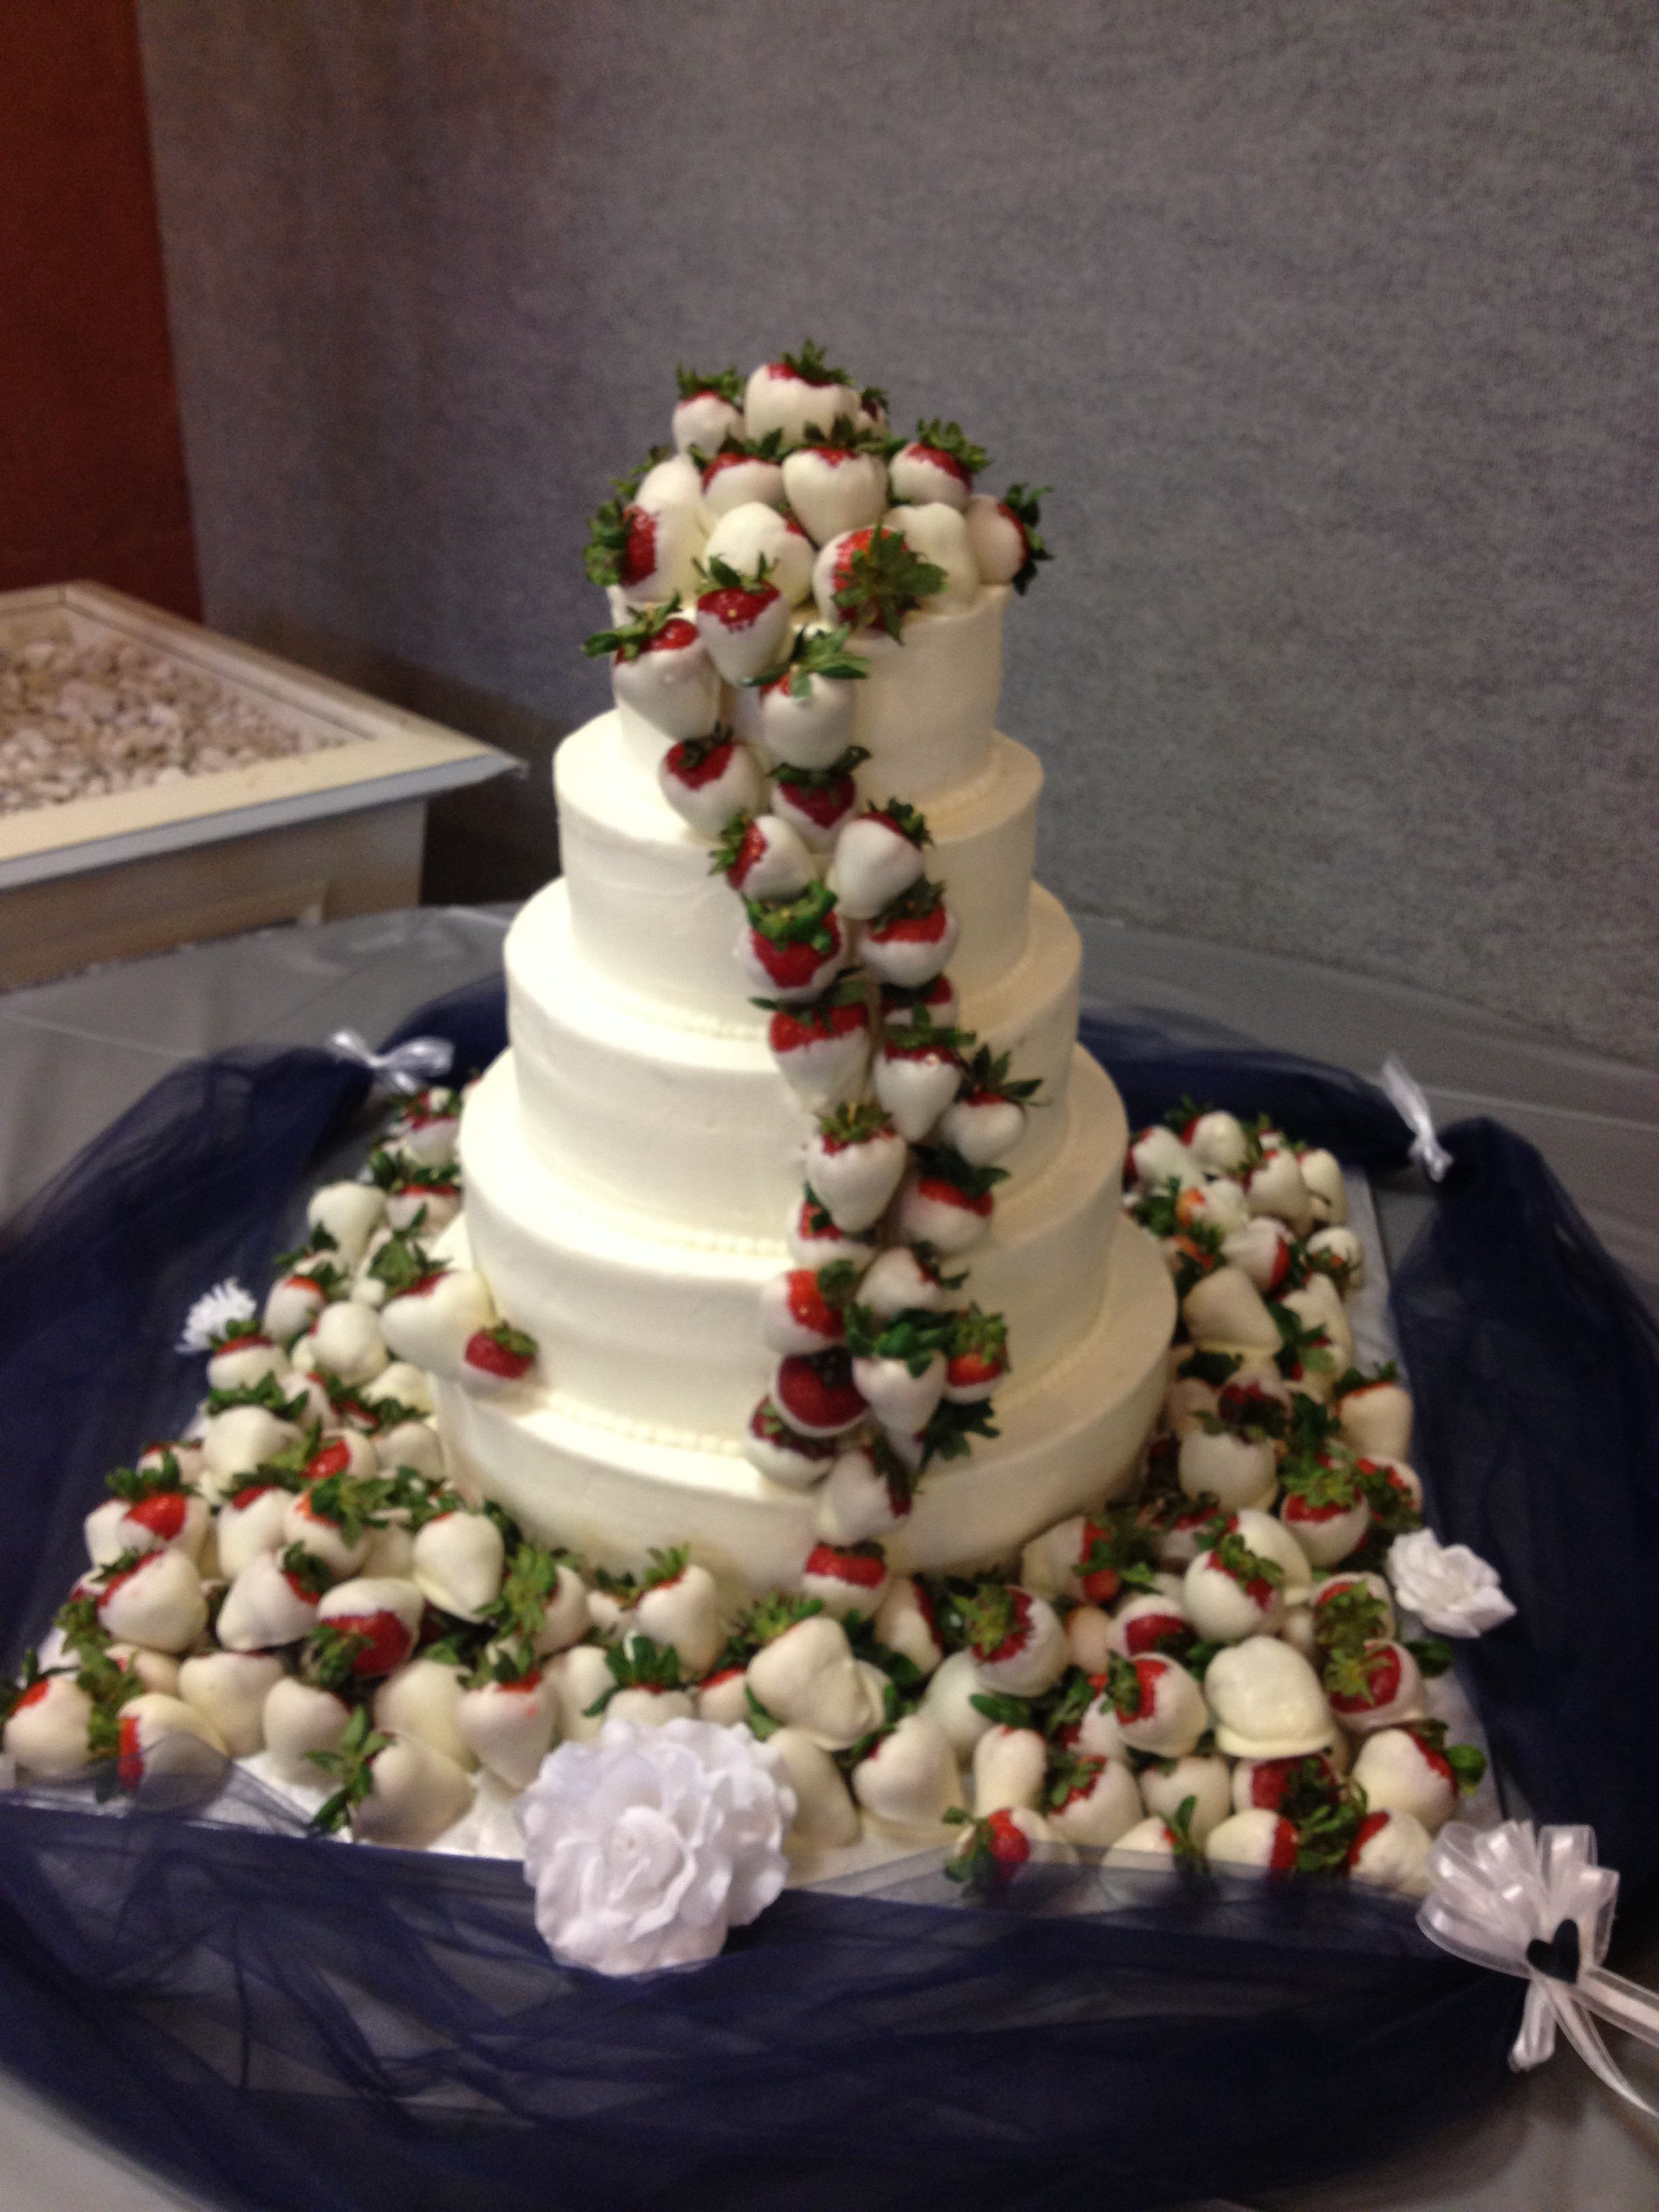 Wedding Cakes With Chocolate Covered Strawberries  Chocolate covered strawberry wedding cake made by Justine